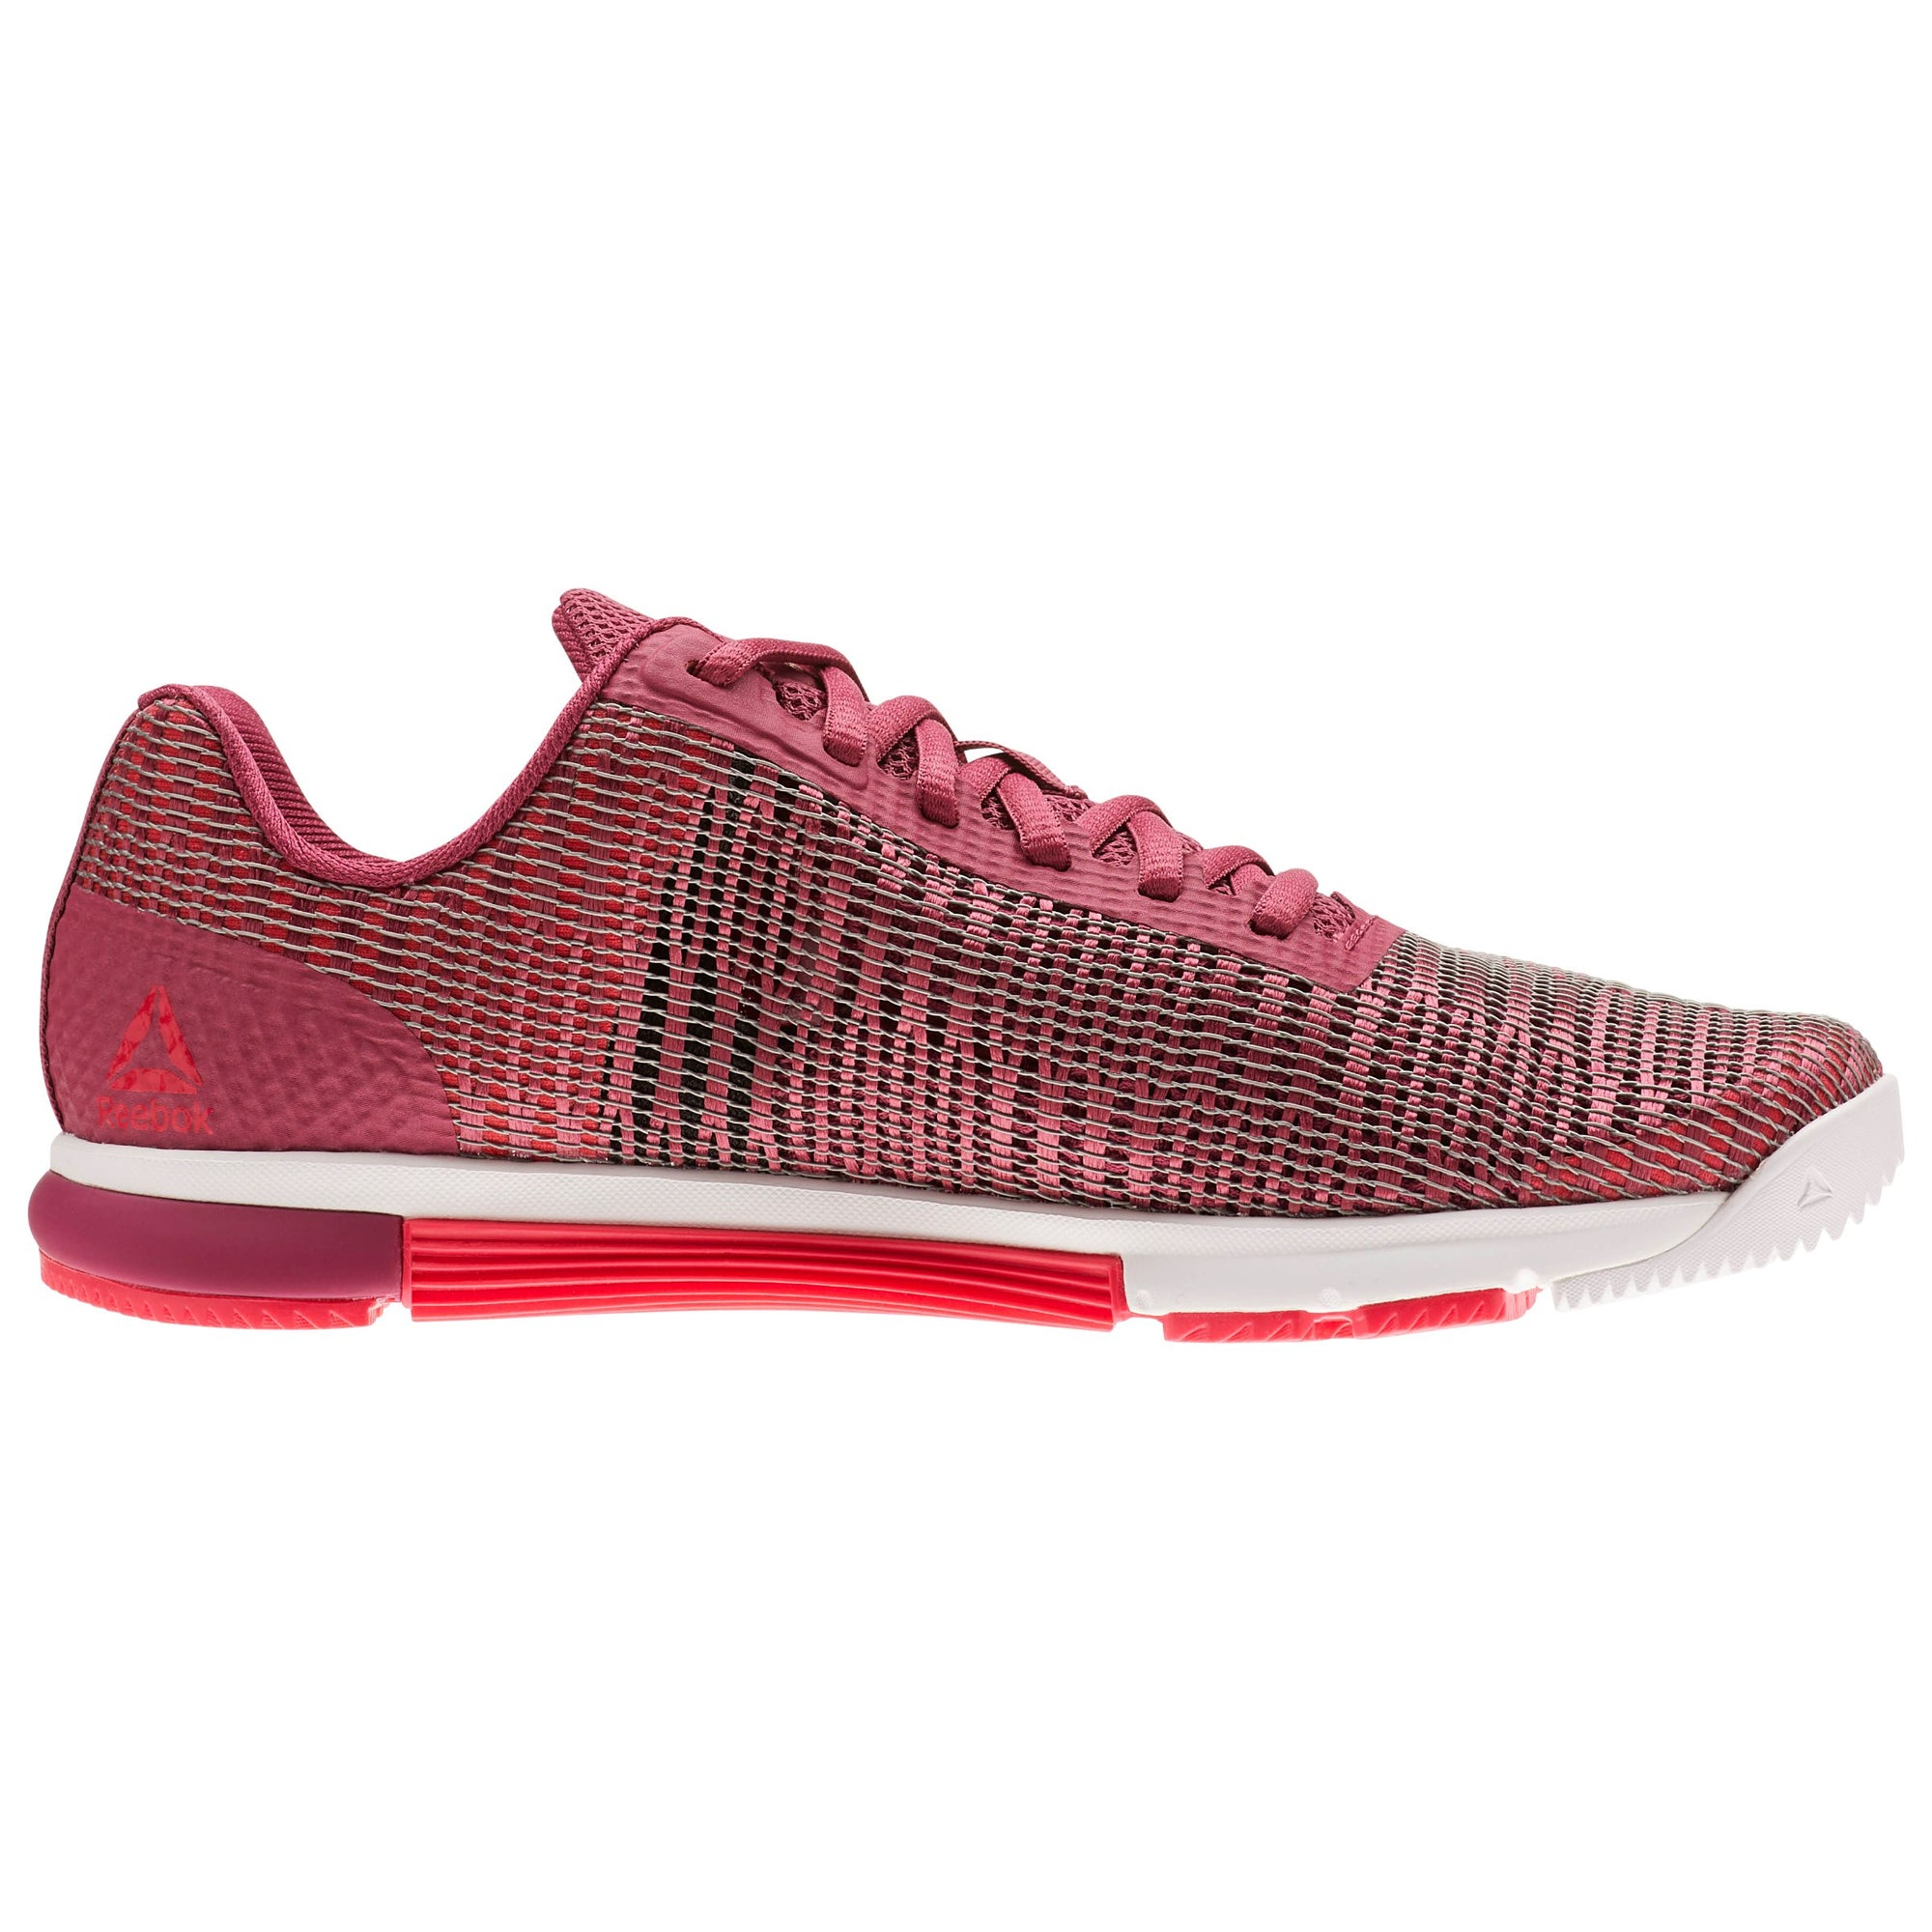 b3e0f9a89a2 Buy Reebok Women Speed Flexweave Training Shoes